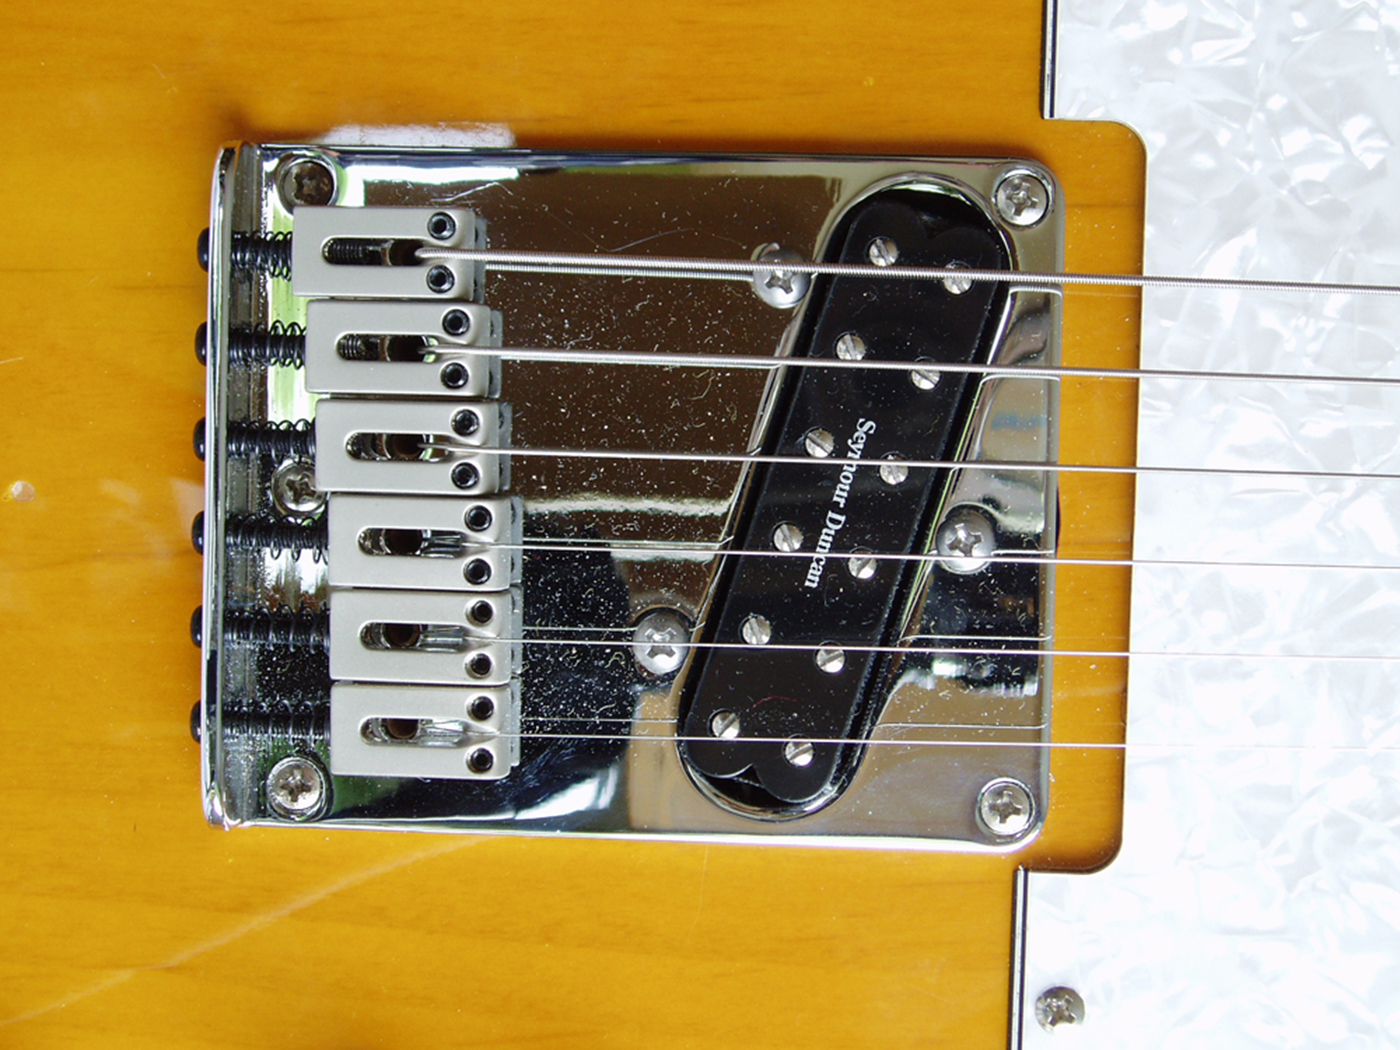 Diy Workshop Squier Telecaster Upgrades All Things Wiring Diagram Seymour Duncan Little 59 Strat Guitar